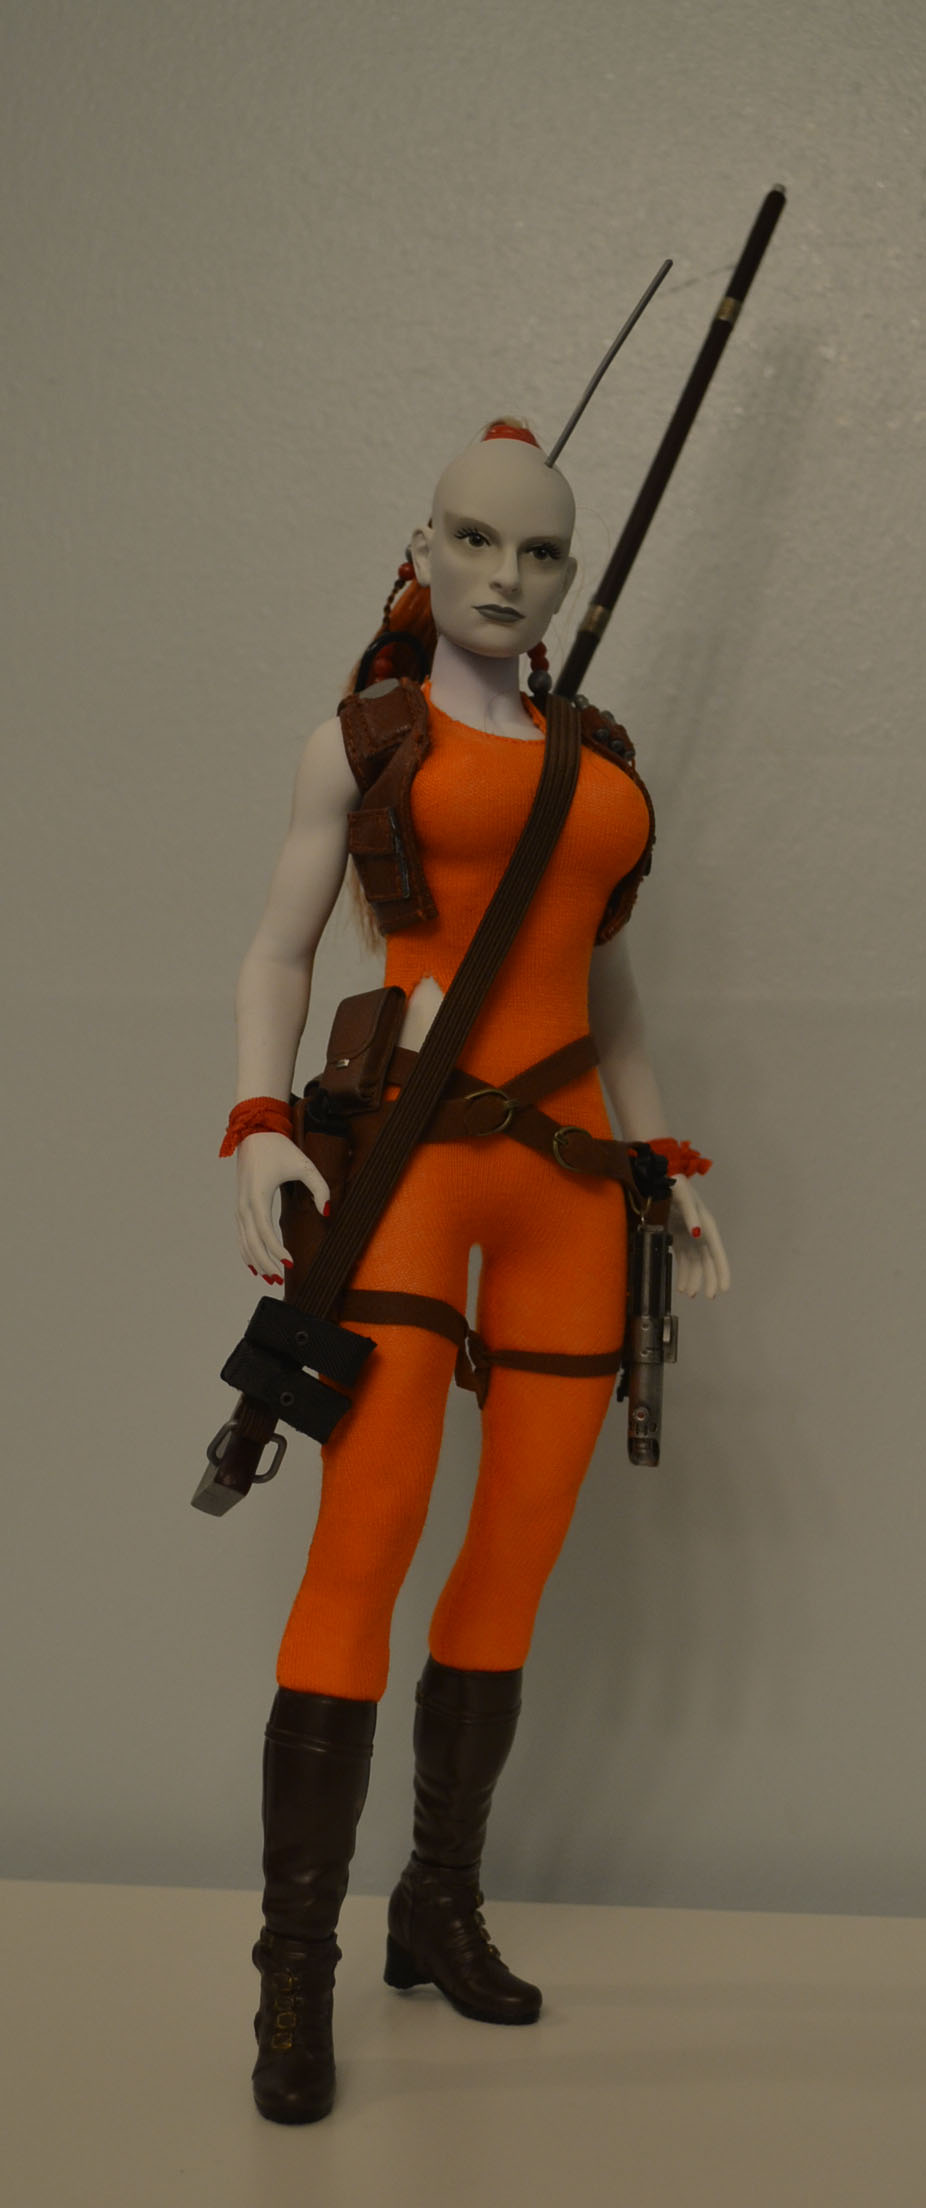 bountyhunter - Custom/Kitbash: Aurra Sing - Star Wars Bounty Hunter (Episode I) _dsc3125